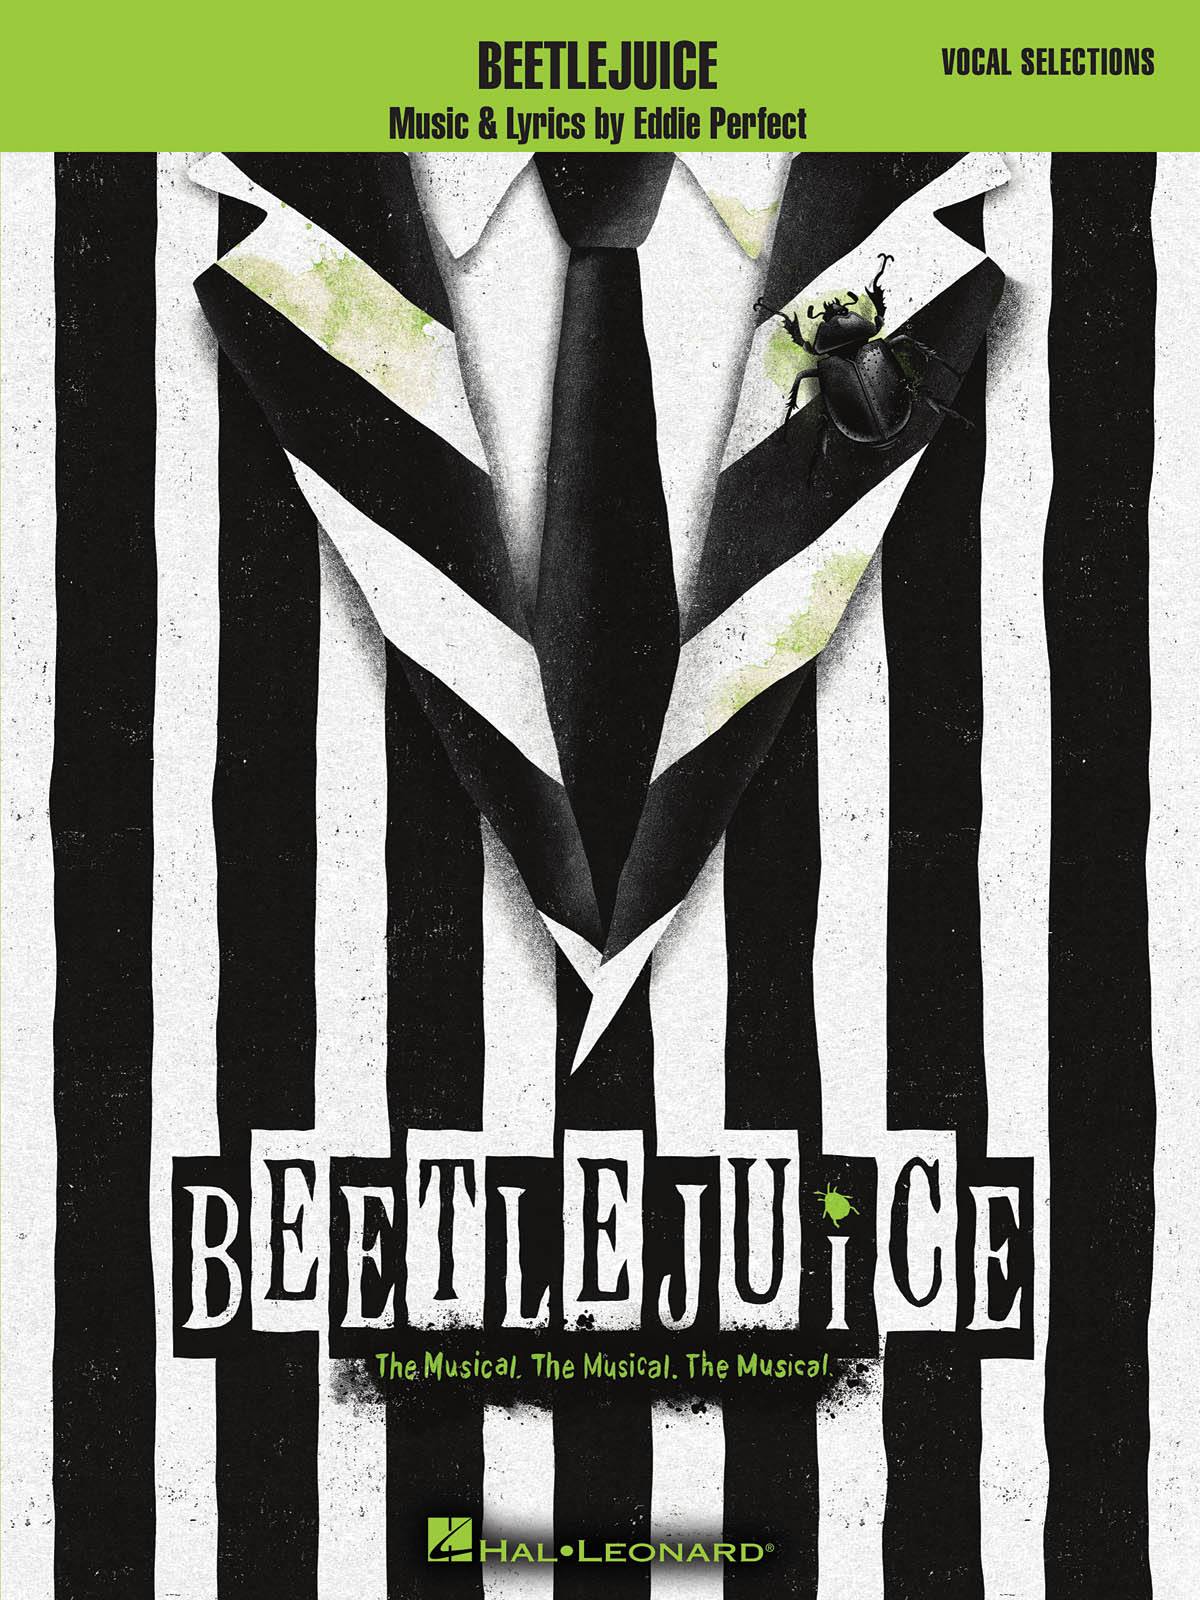 Beetlejuice The Broadway Musical Vocal Selections